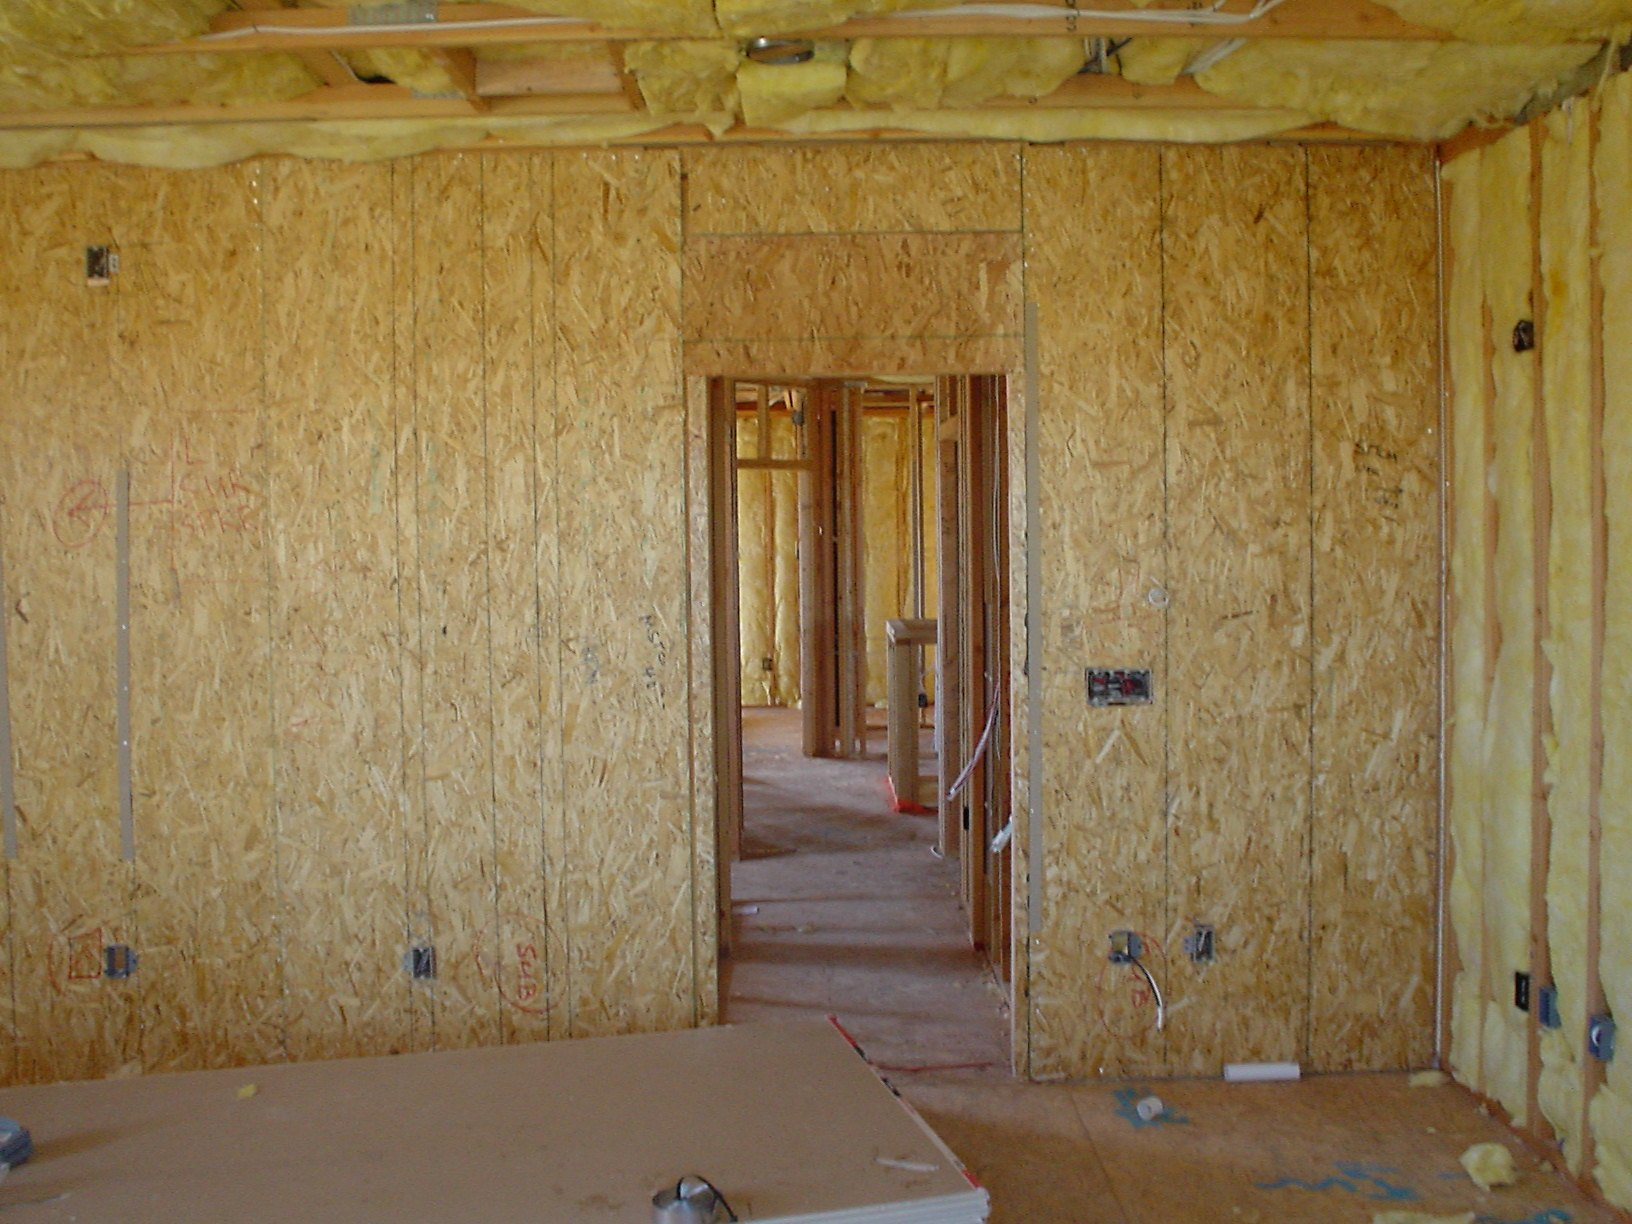 Entrance to theater, left front corner of room in construction.